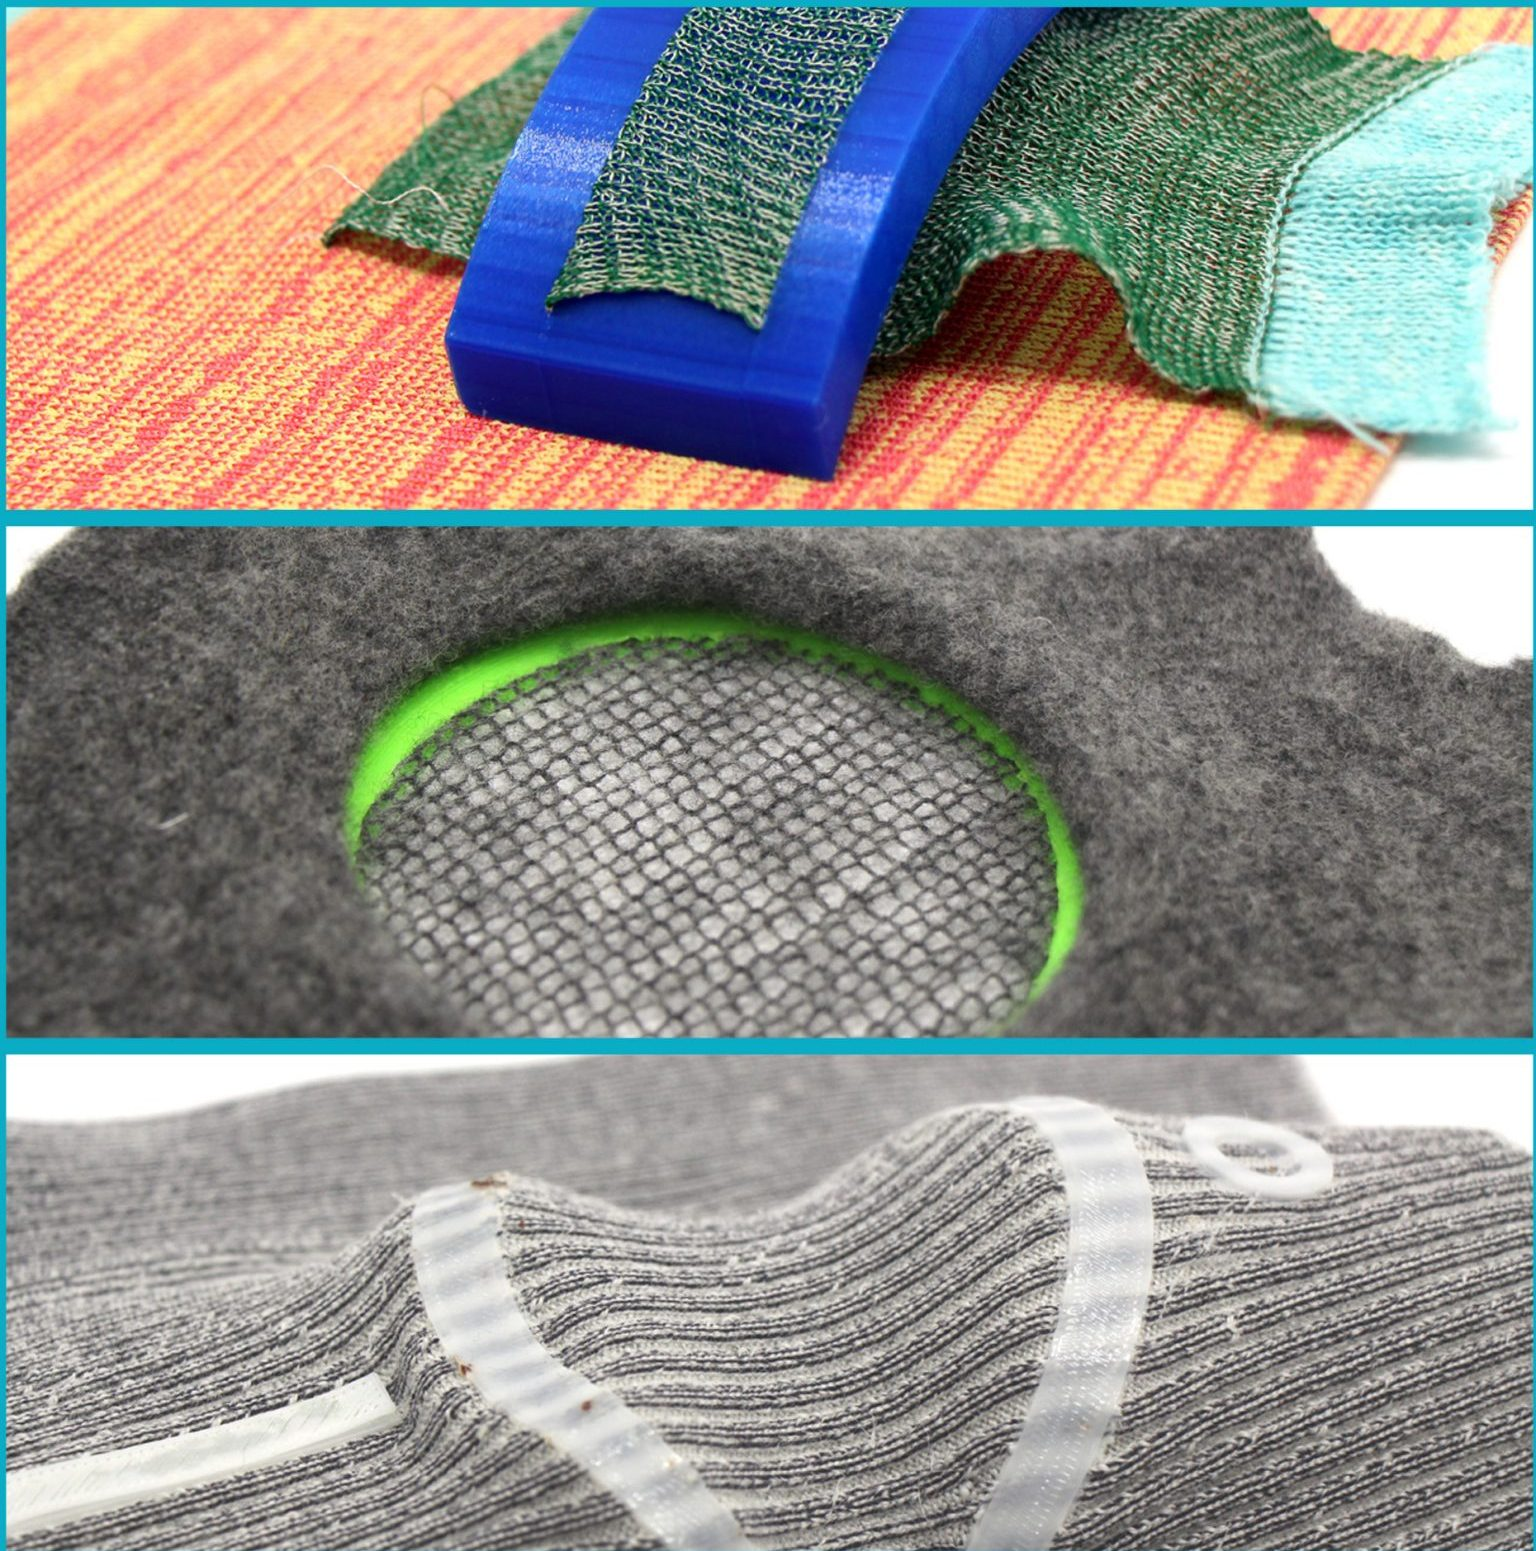 Creating the 3D printed meshes on knitted fabric. Image via Lingxiao Luo.